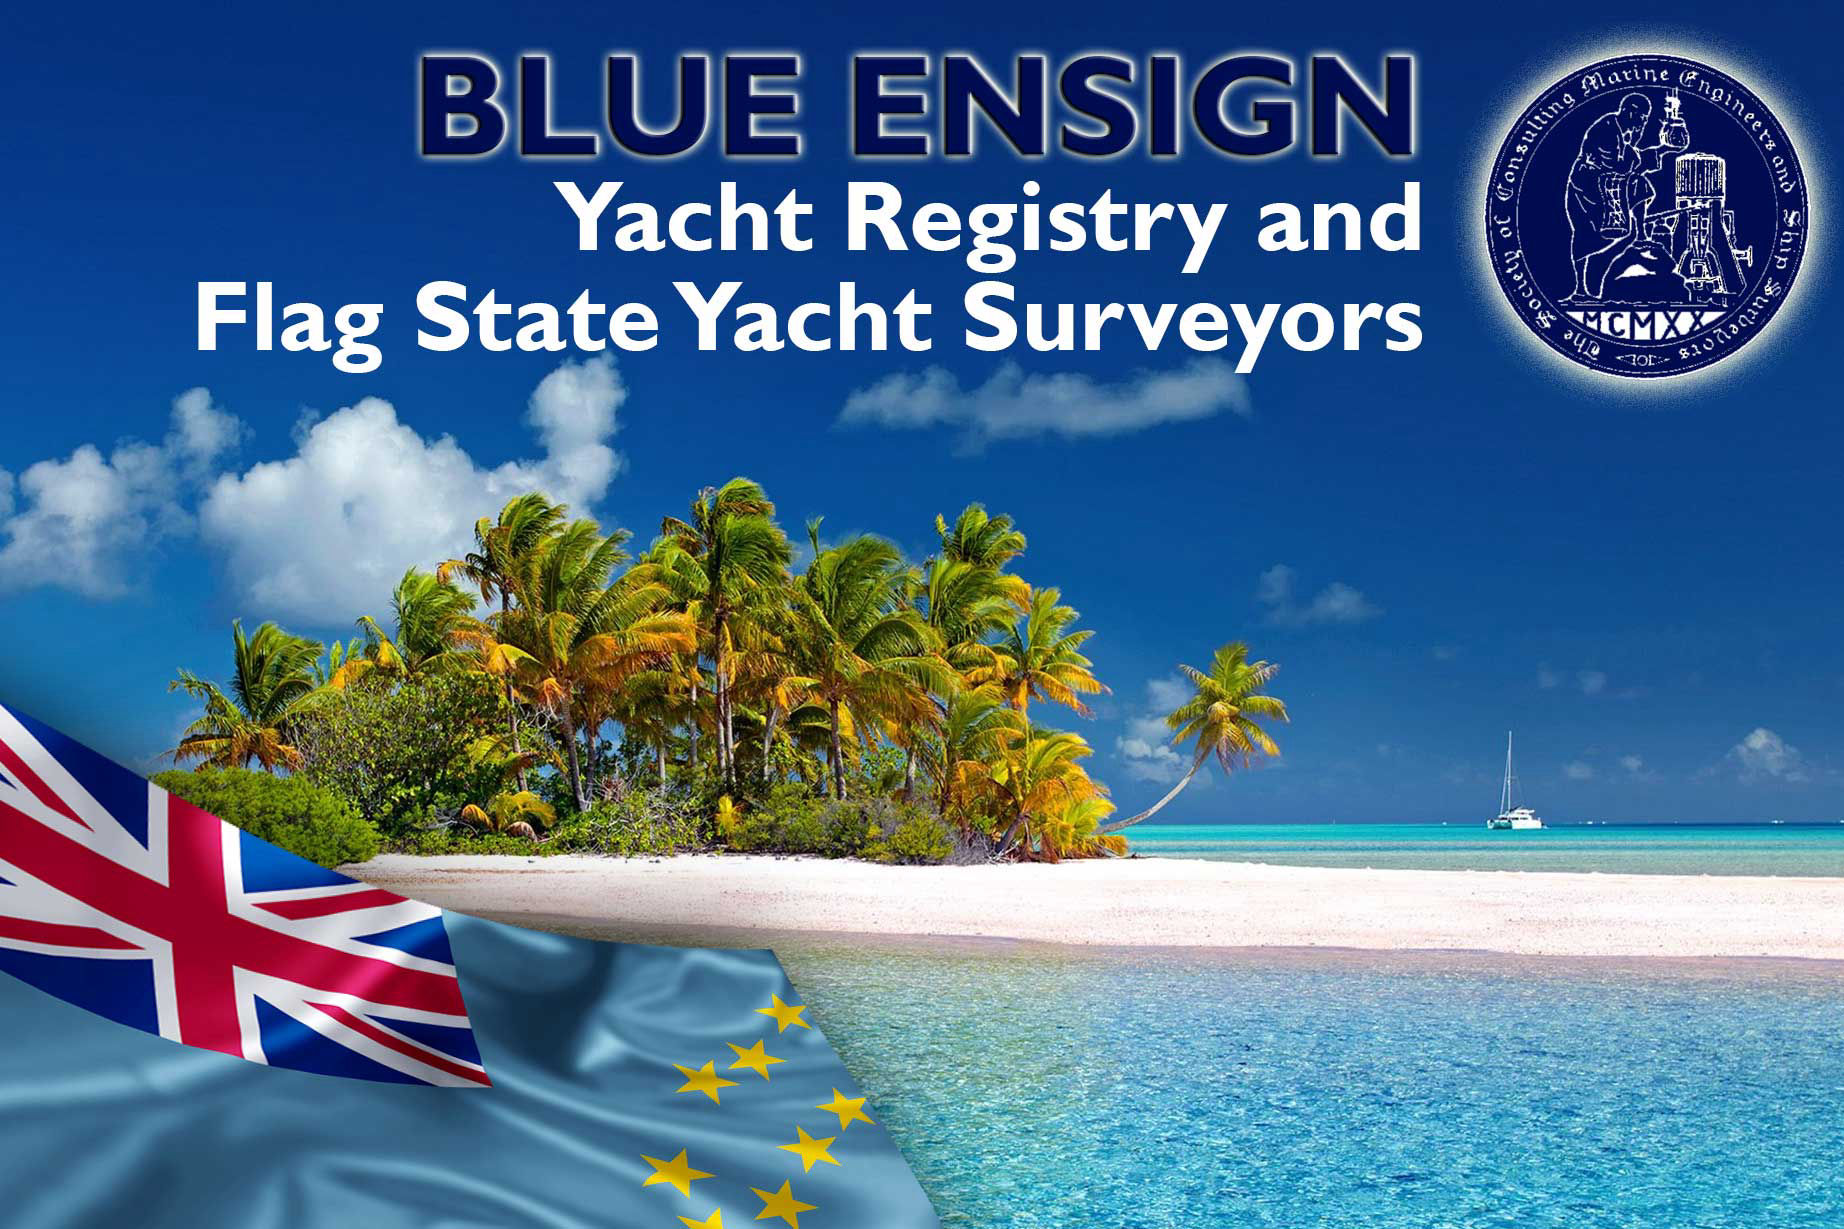 Blue Ensign - Tuvalu Yacht Registry and Surveyors